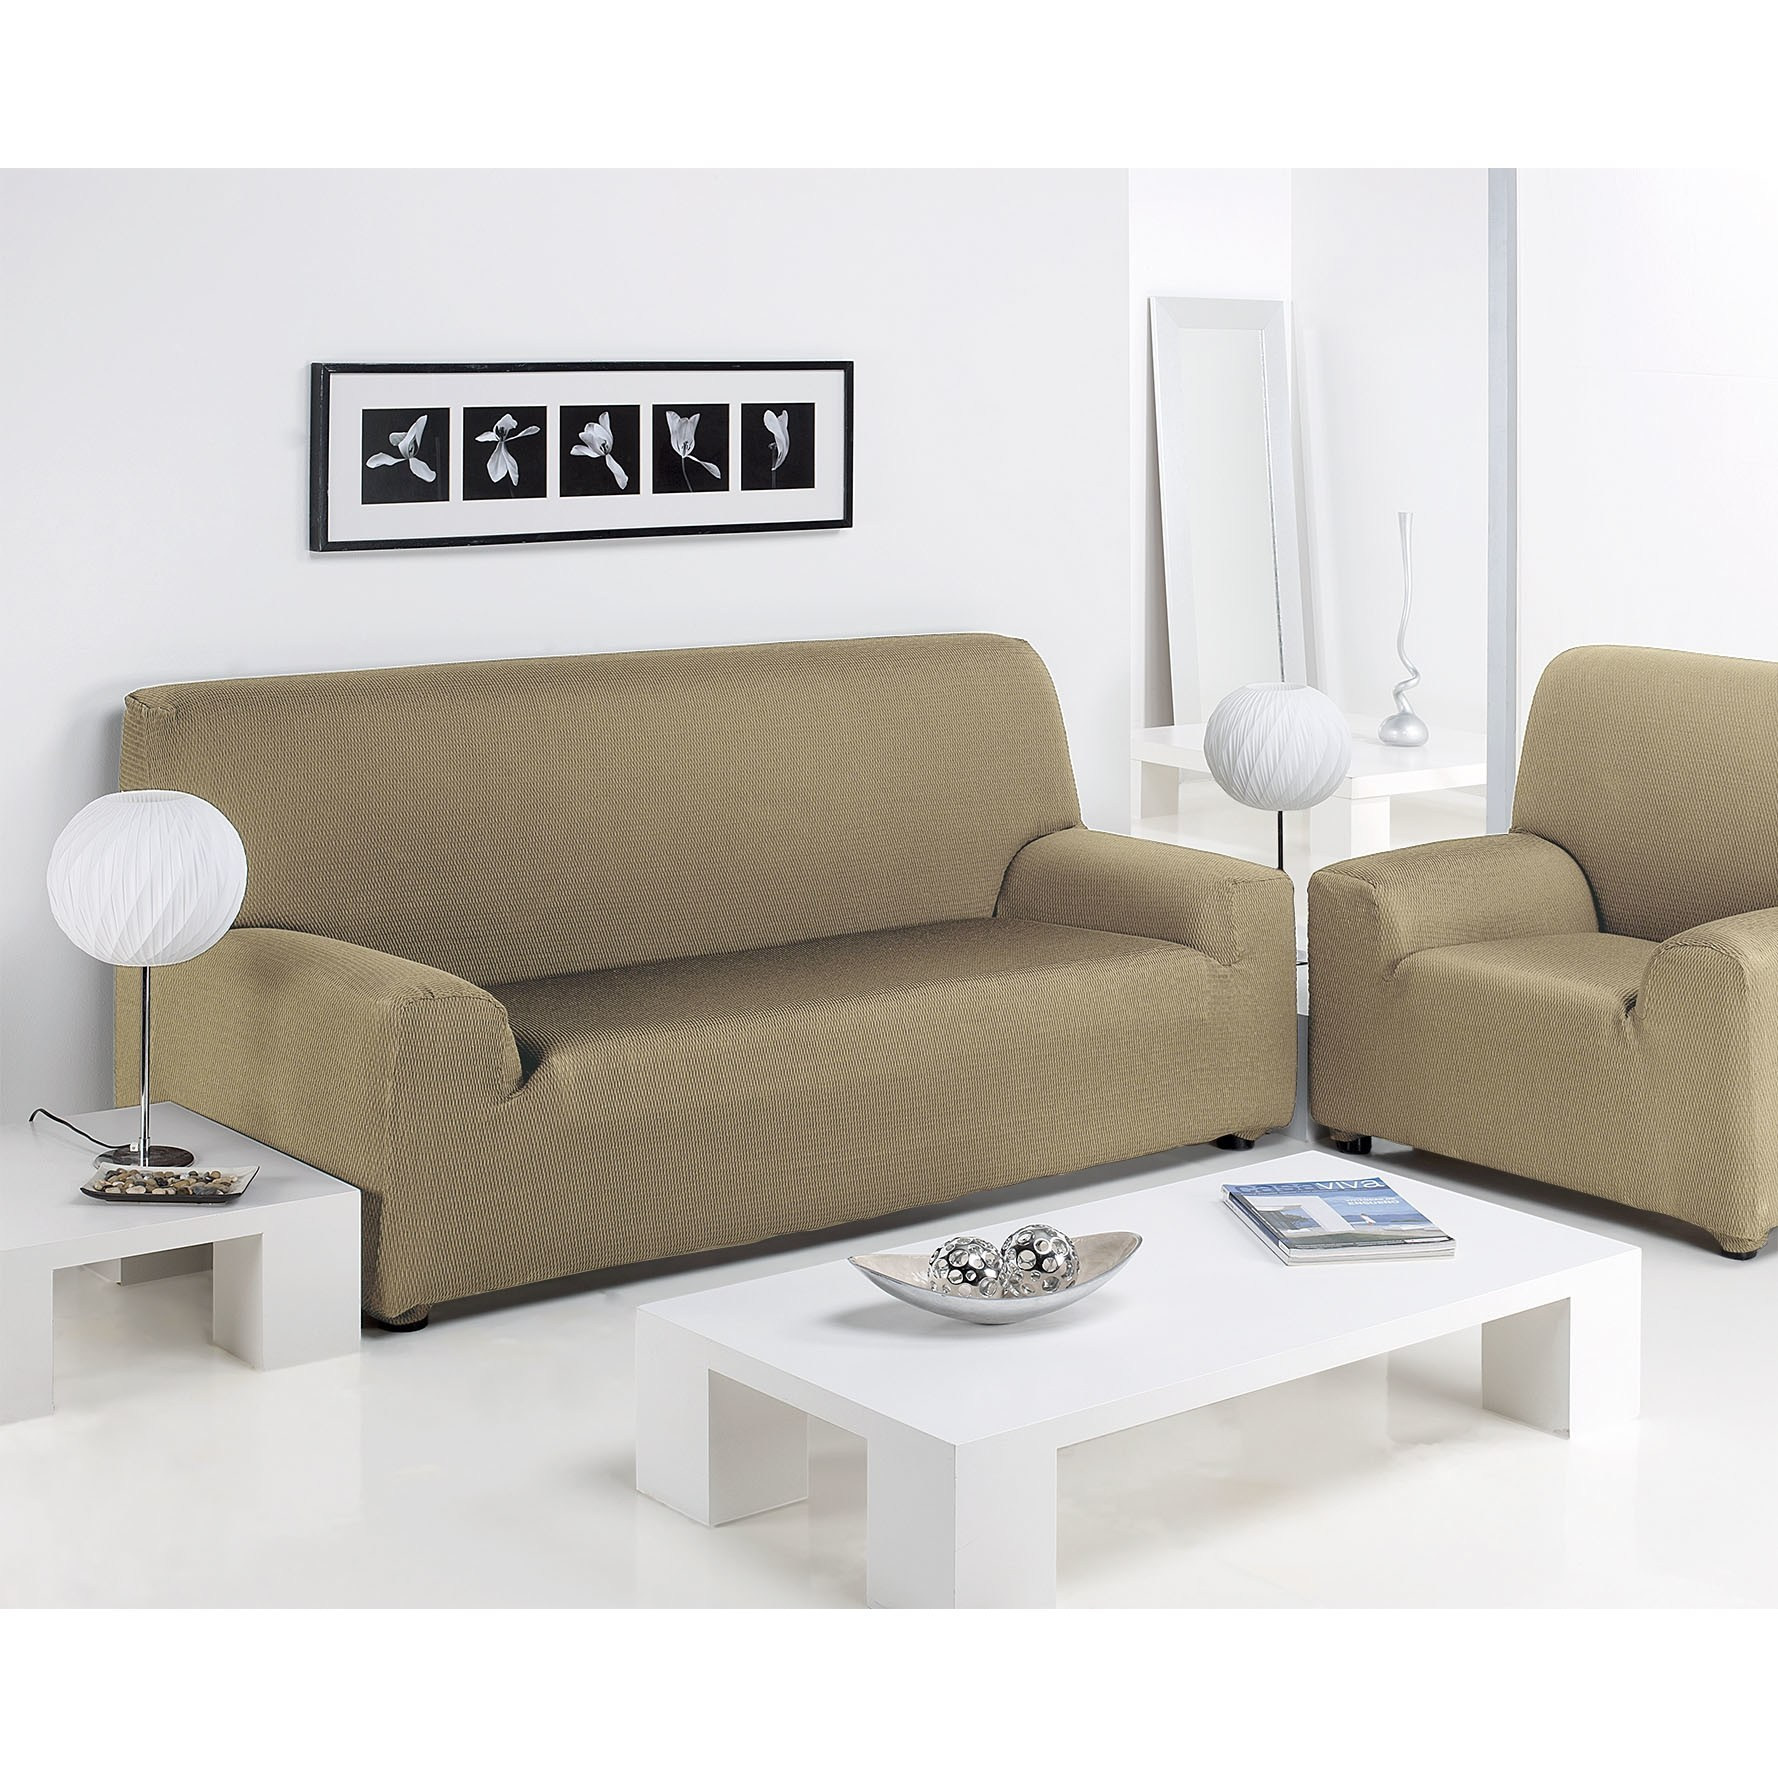 Best ideas about Can You Put A Slipcover On A Reclining Sofa . Save or Pin 75 Unique Sofa Recliner Cover Ideas HomeCoach Now.